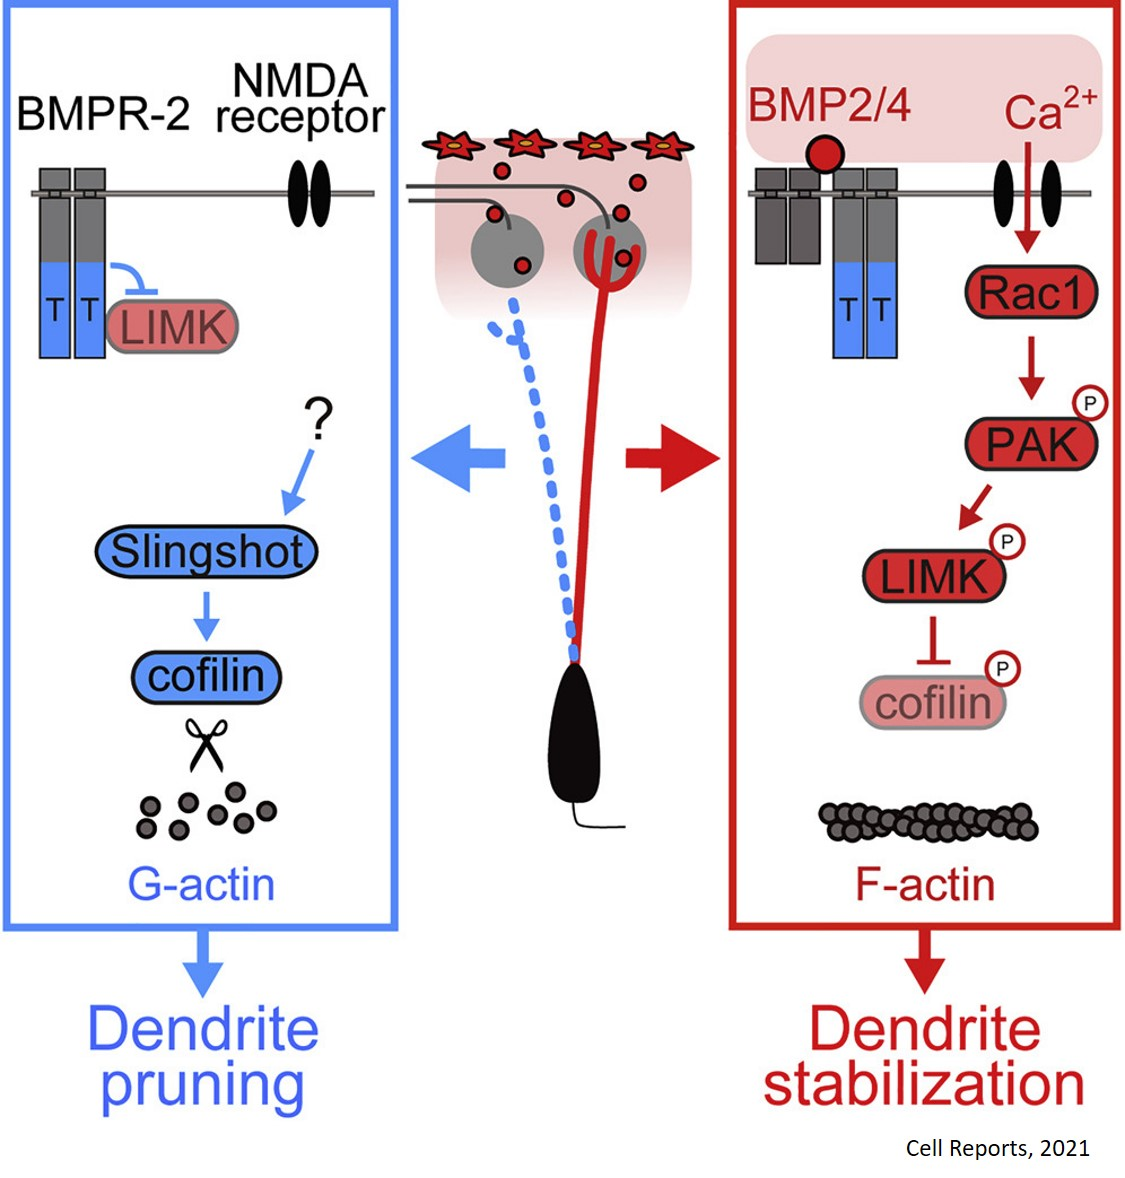 Controlling the pruning and strengthening of neuron branches